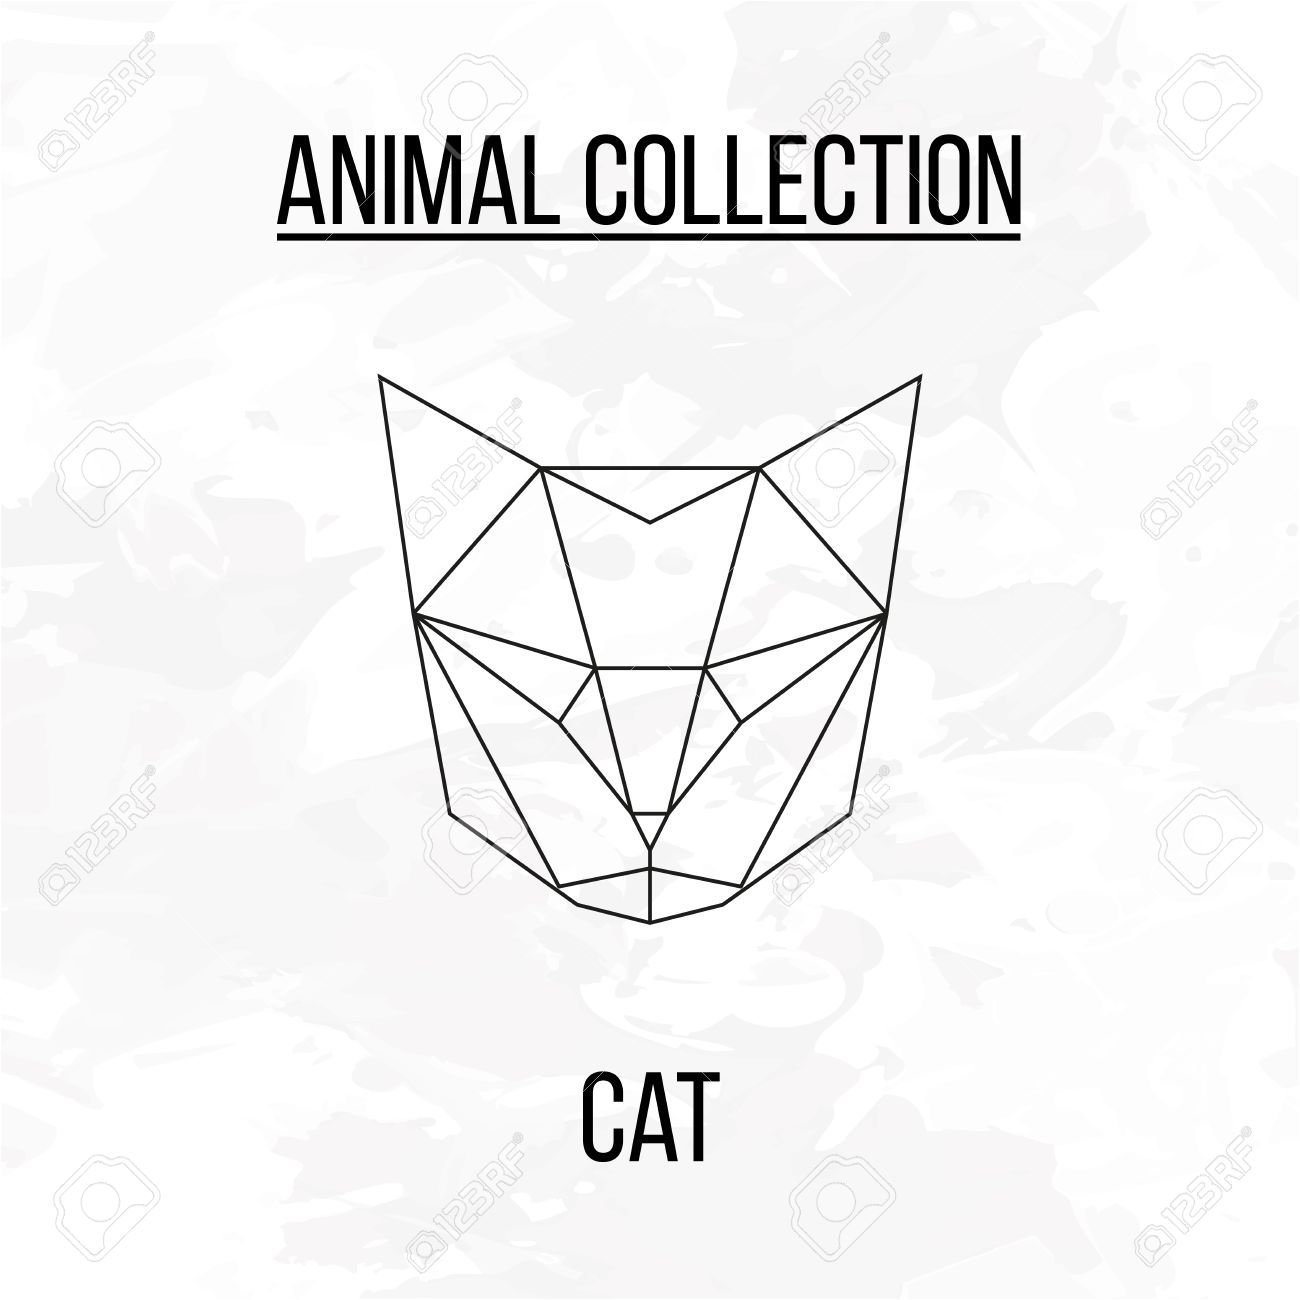 Geometric Animal Cat Head Background Royalty Free Cliparts Vectors And Stock Illustration Image 55413498 Geometric Animals Geometric Cat Geometric